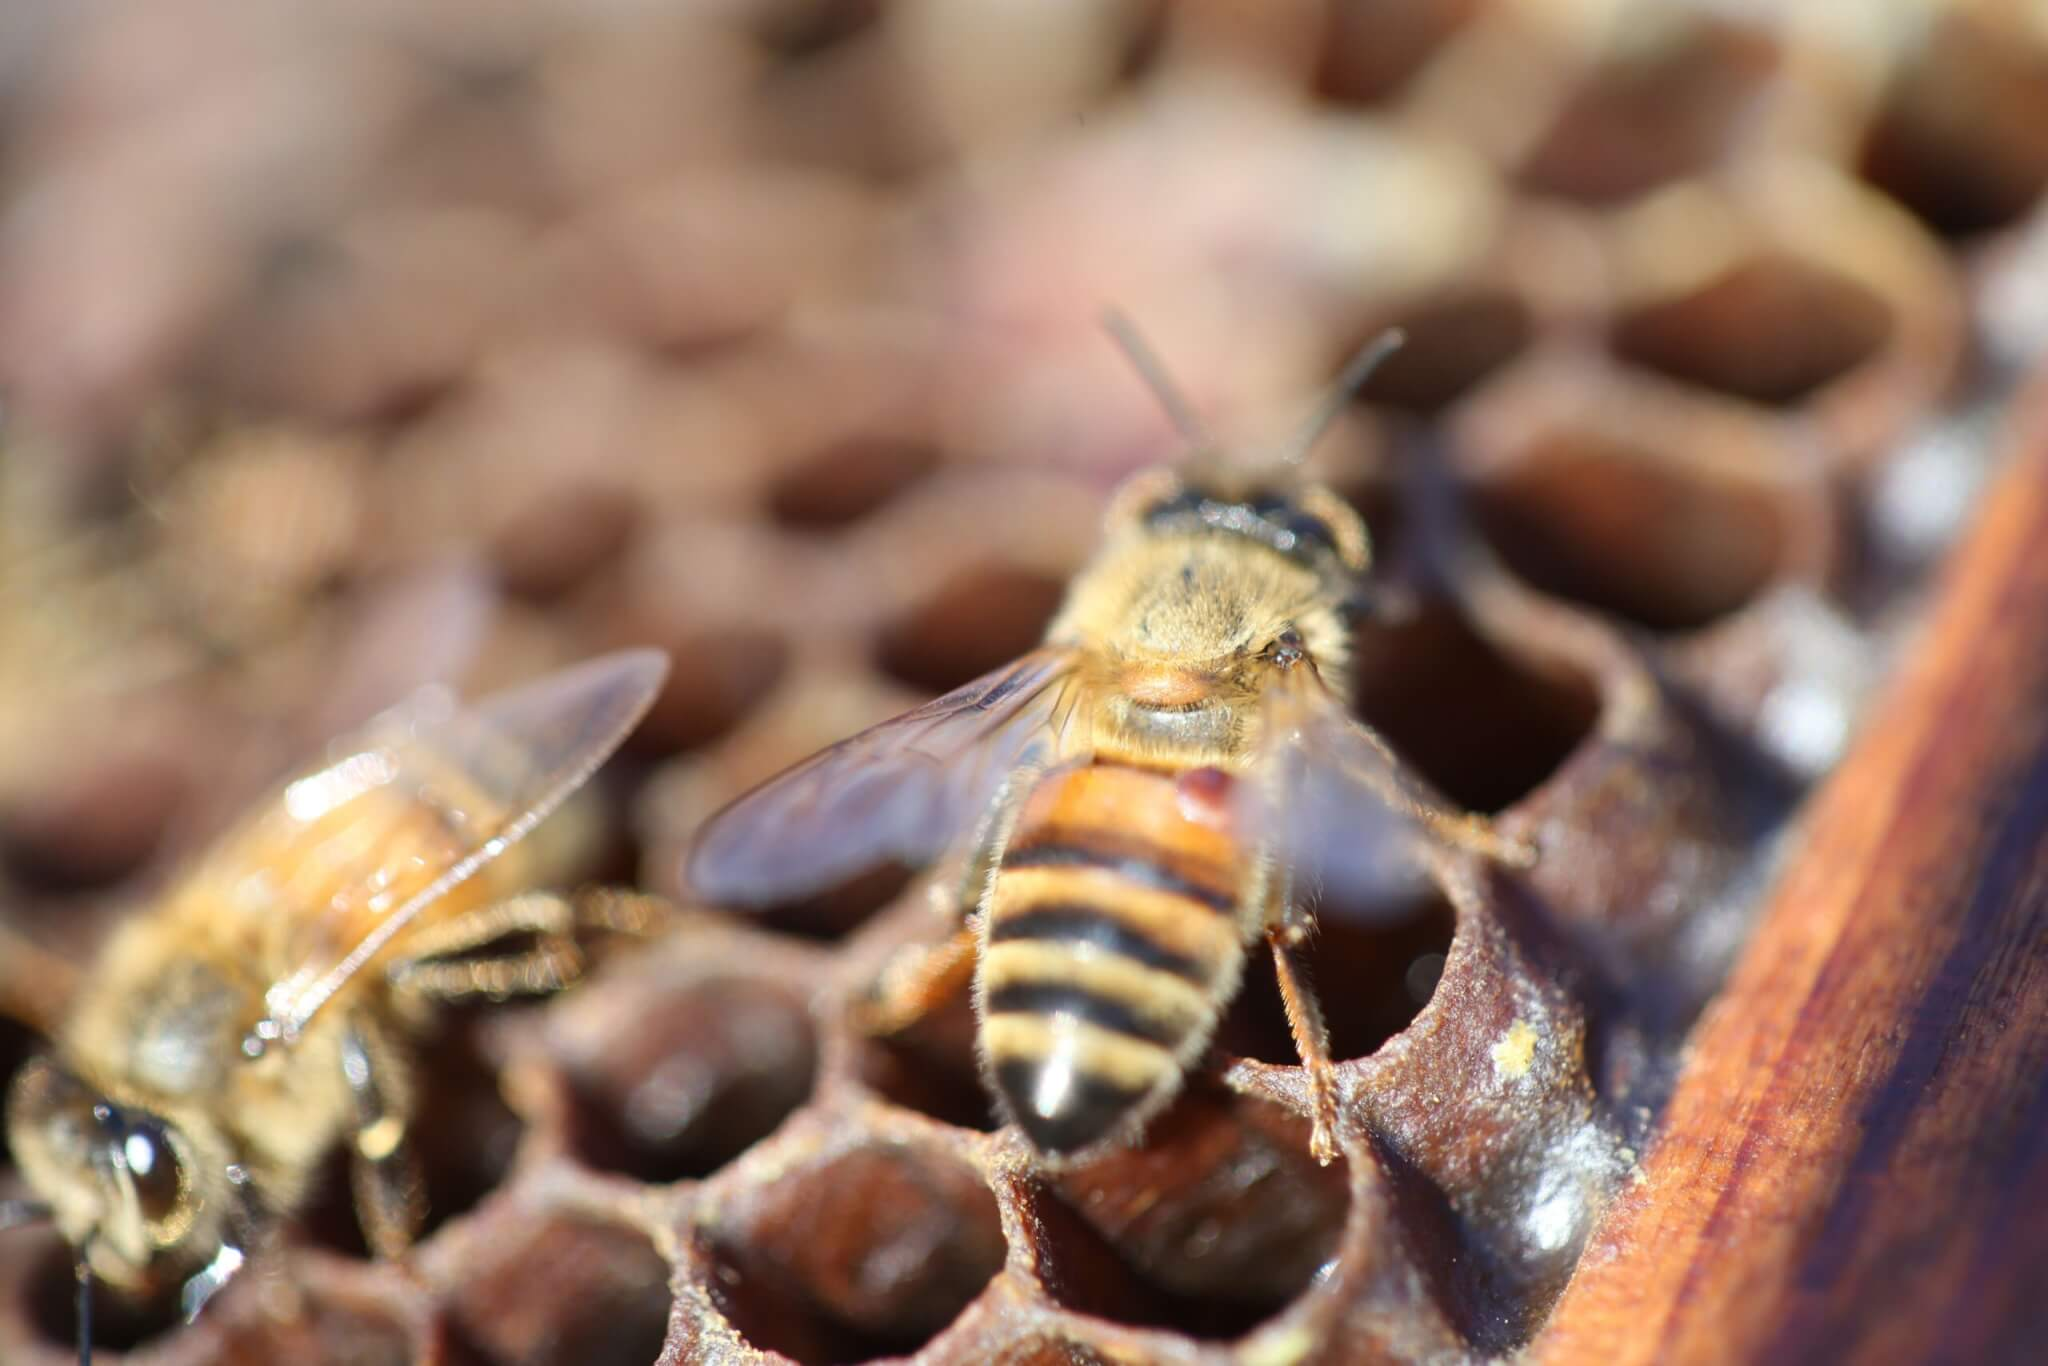 Bees – 10/24/16 – Photos of tiny Varroa mites on bees that are endangering the bee population. For a research story by Natalie van Hoose.